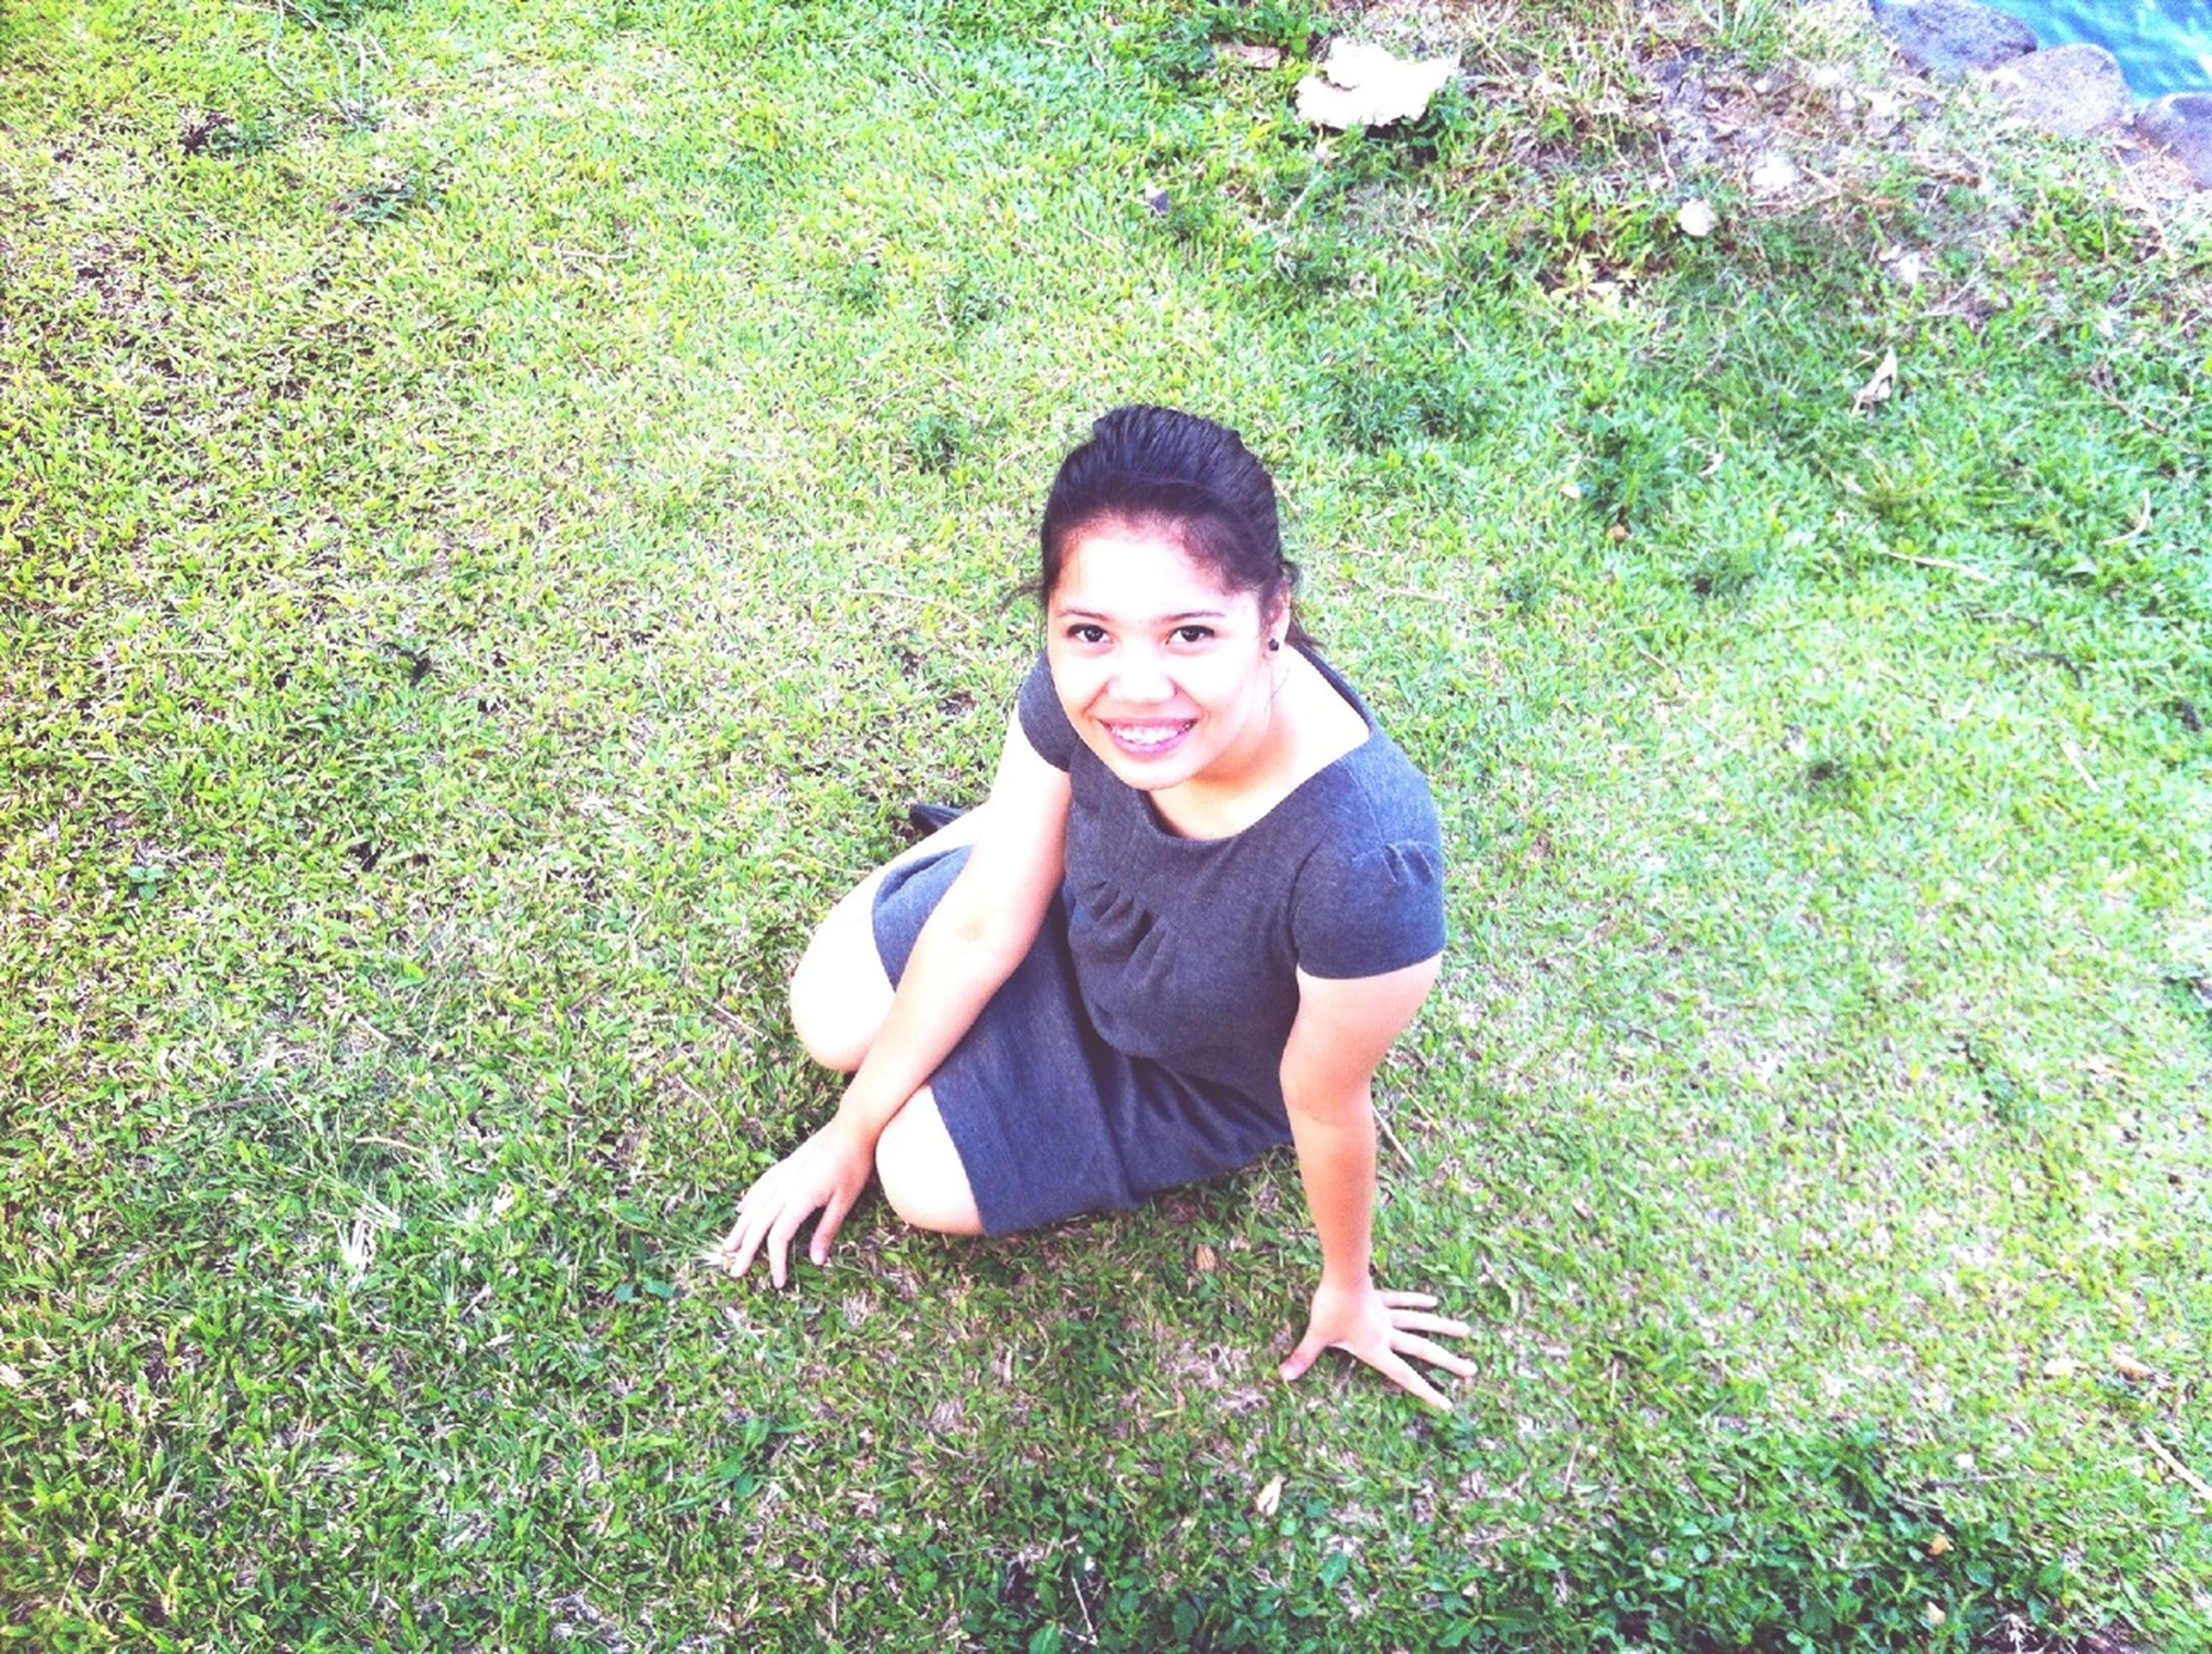 person, portrait, looking at camera, grass, lifestyles, leisure activity, casual clothing, high angle view, smiling, green color, front view, young adult, happiness, full length, standing, sitting, grassy, field